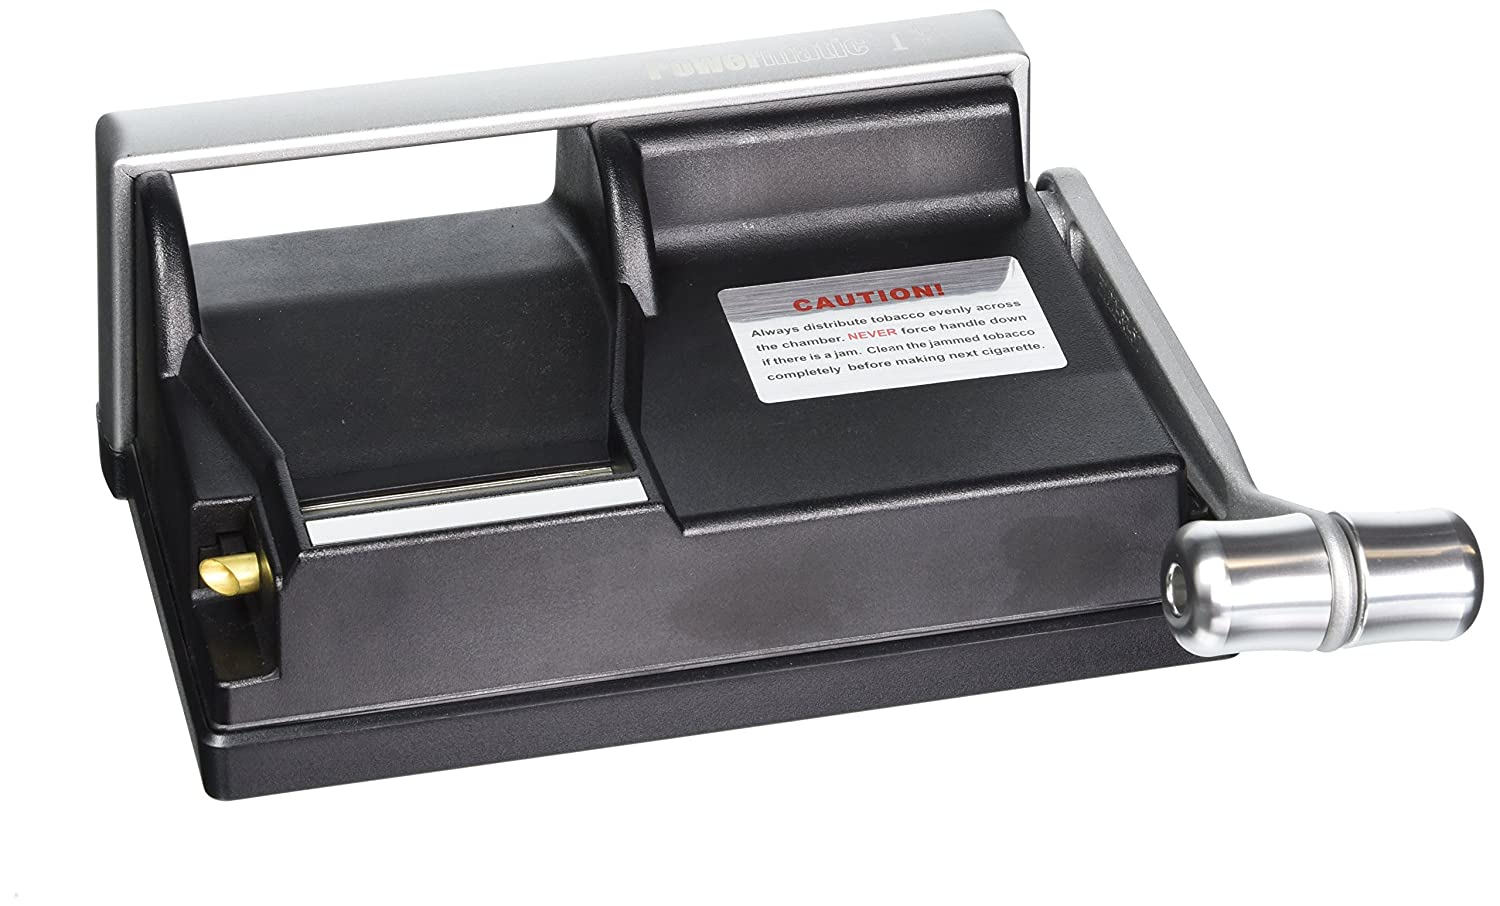 Top 10 Best Cigarette Injector Rolling Machine Reviews